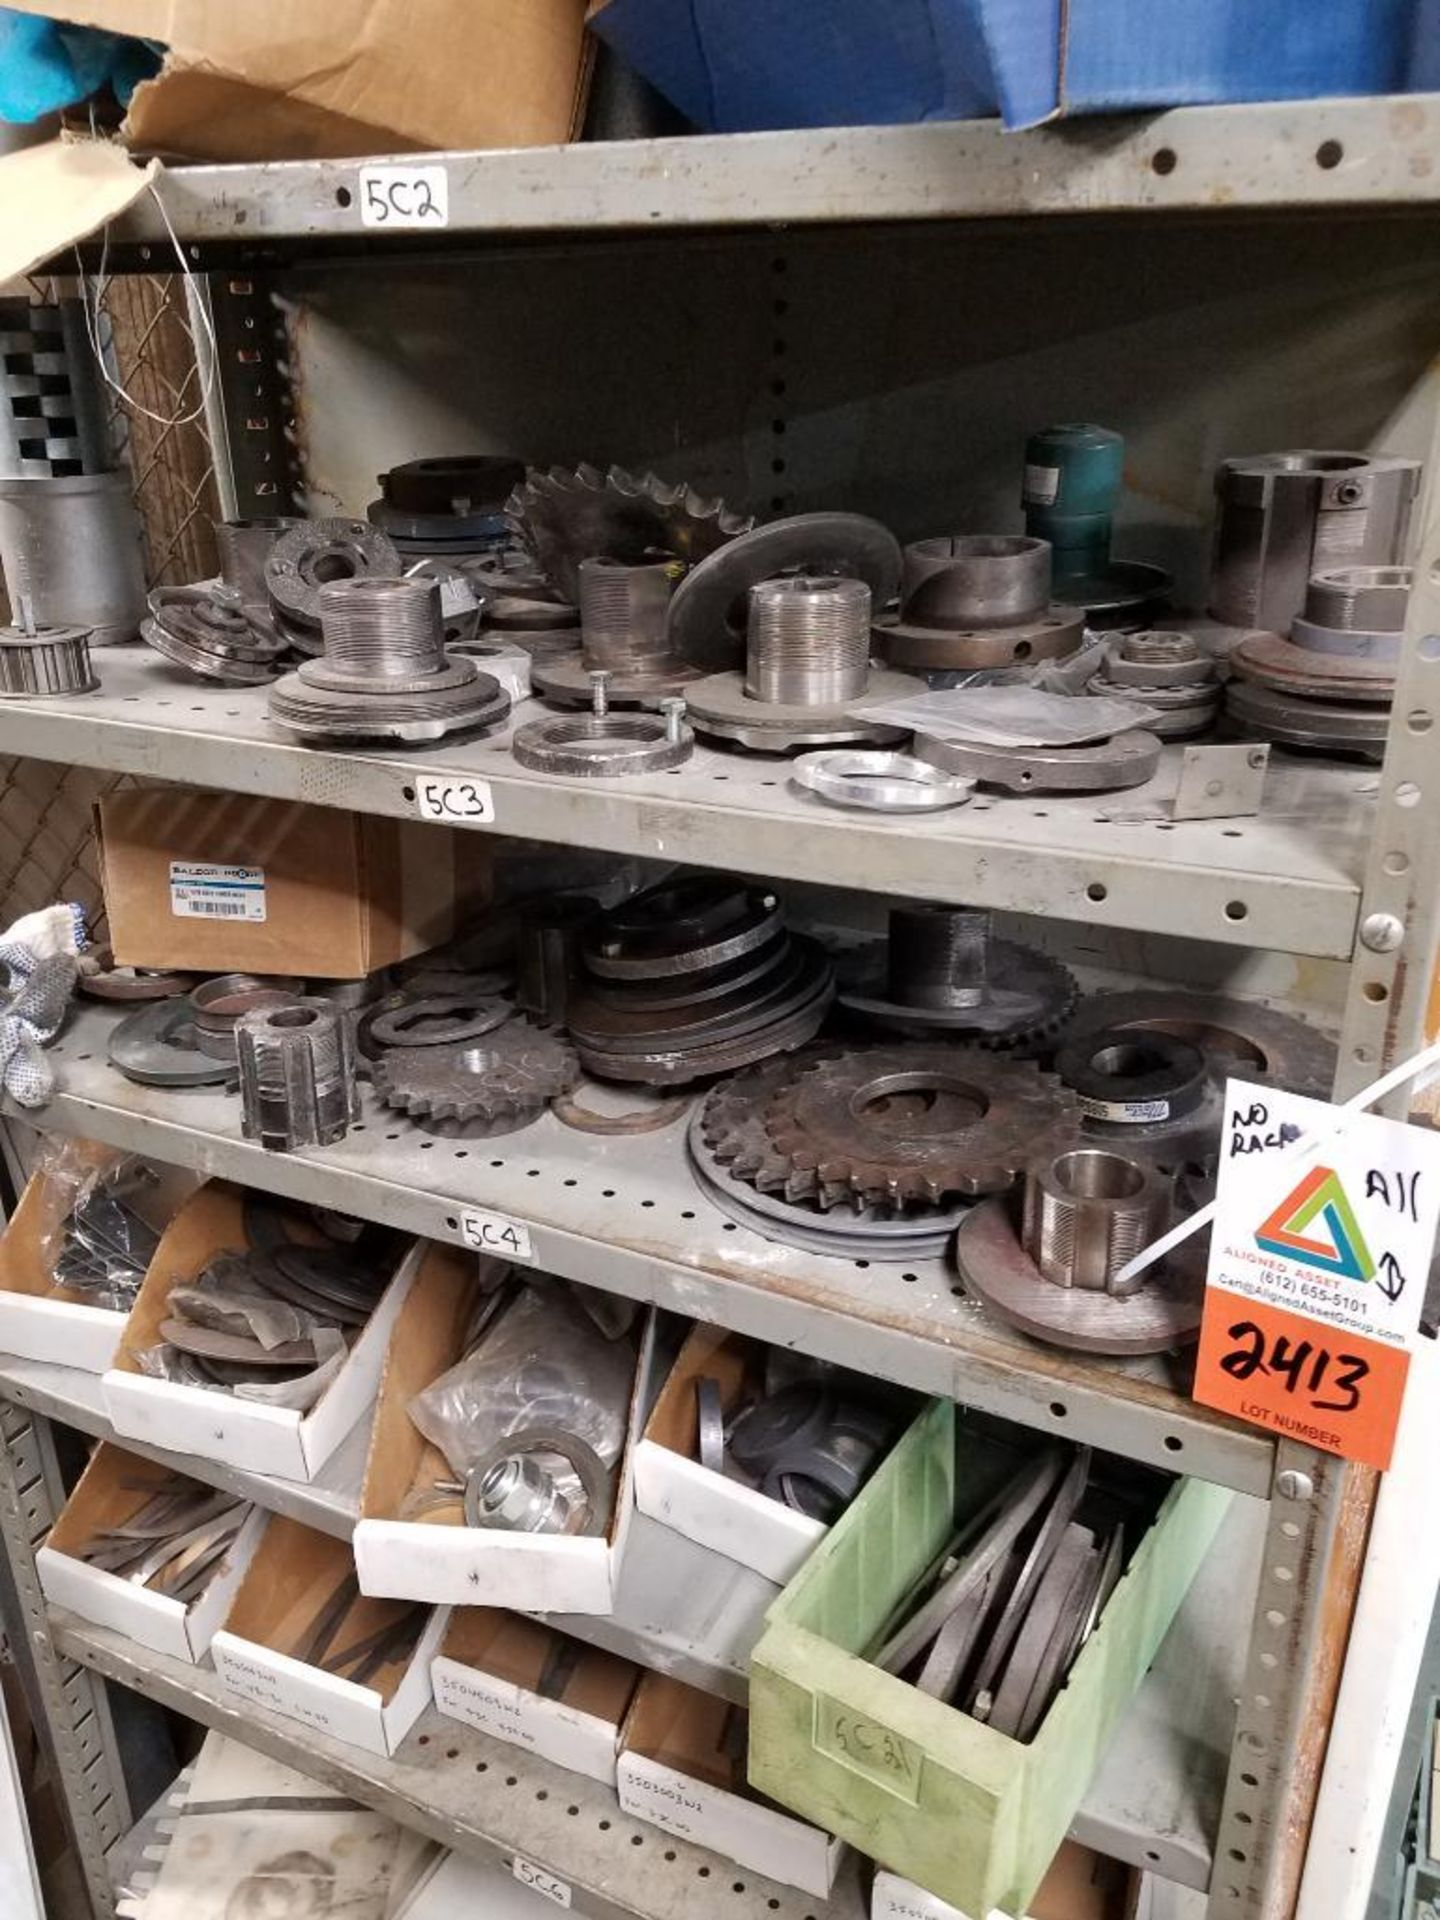 shelf, sprockets, gears, belts, and various parts - Image 4 of 5